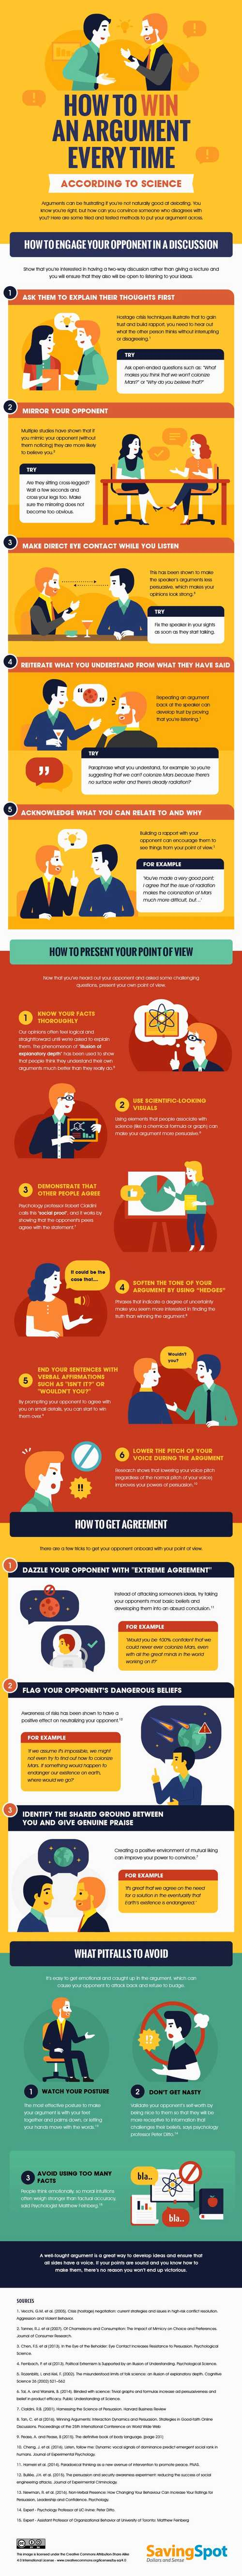 How to Win an Argument, According to Science